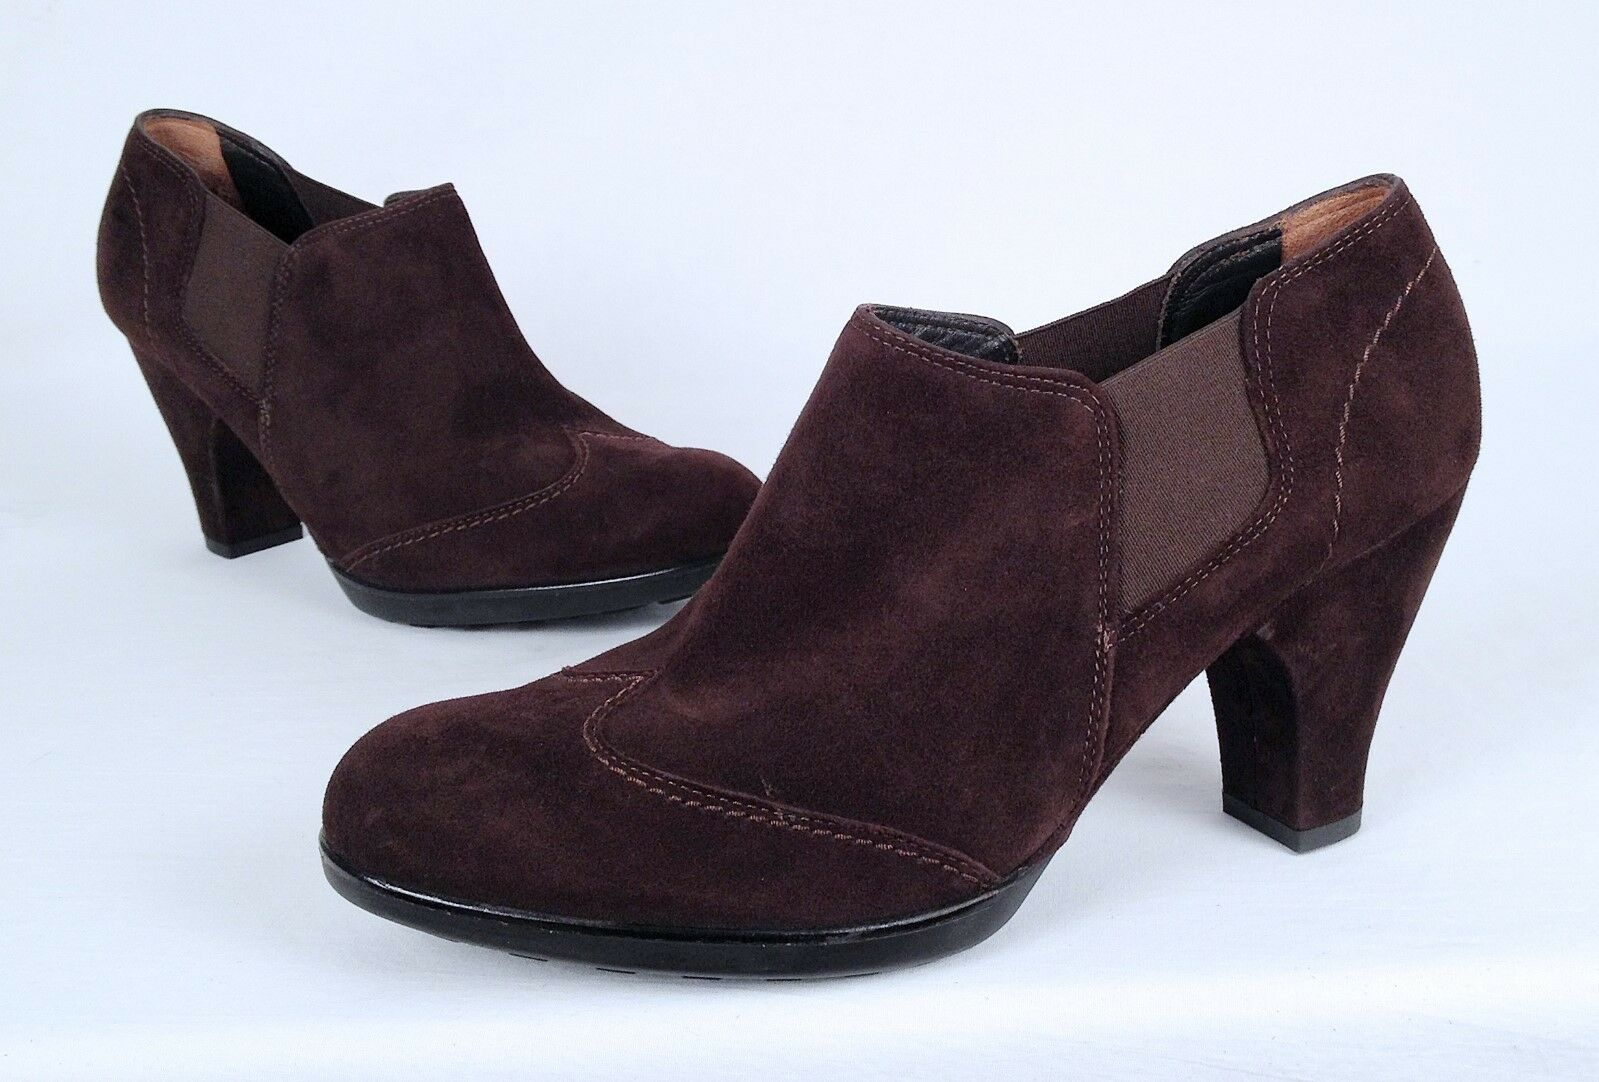 NEW!! Paul Green Wingtip Chelsea Boot- Brown- Size 9 US/ 6.5 AU  380   (A1)